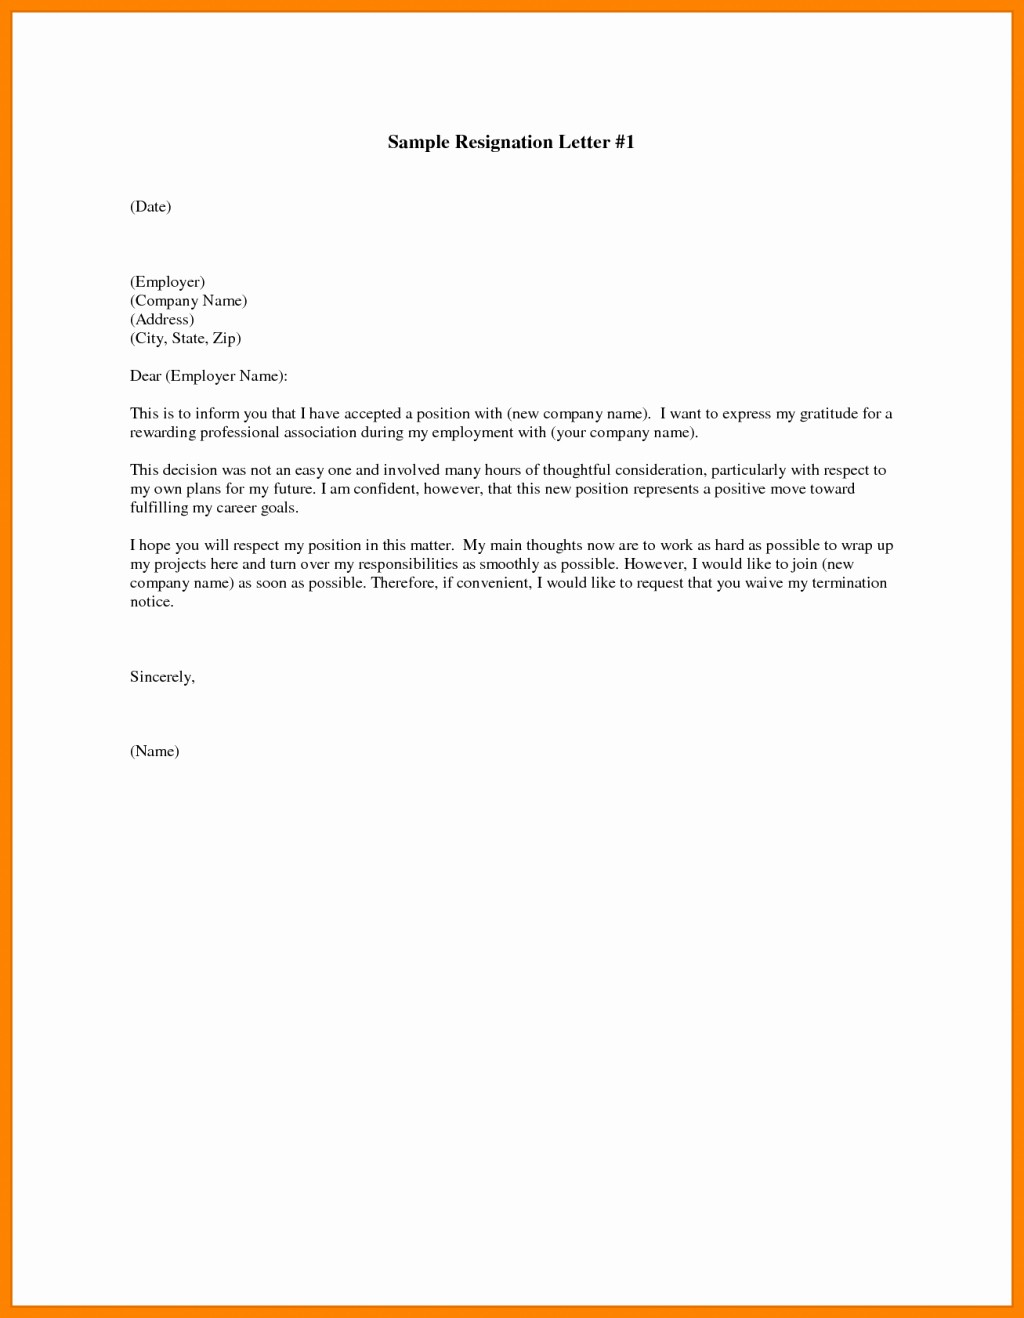 Letter Of Resignation Template Microsoft Best Of Free Resignation Letter Template Microsoft Word Download